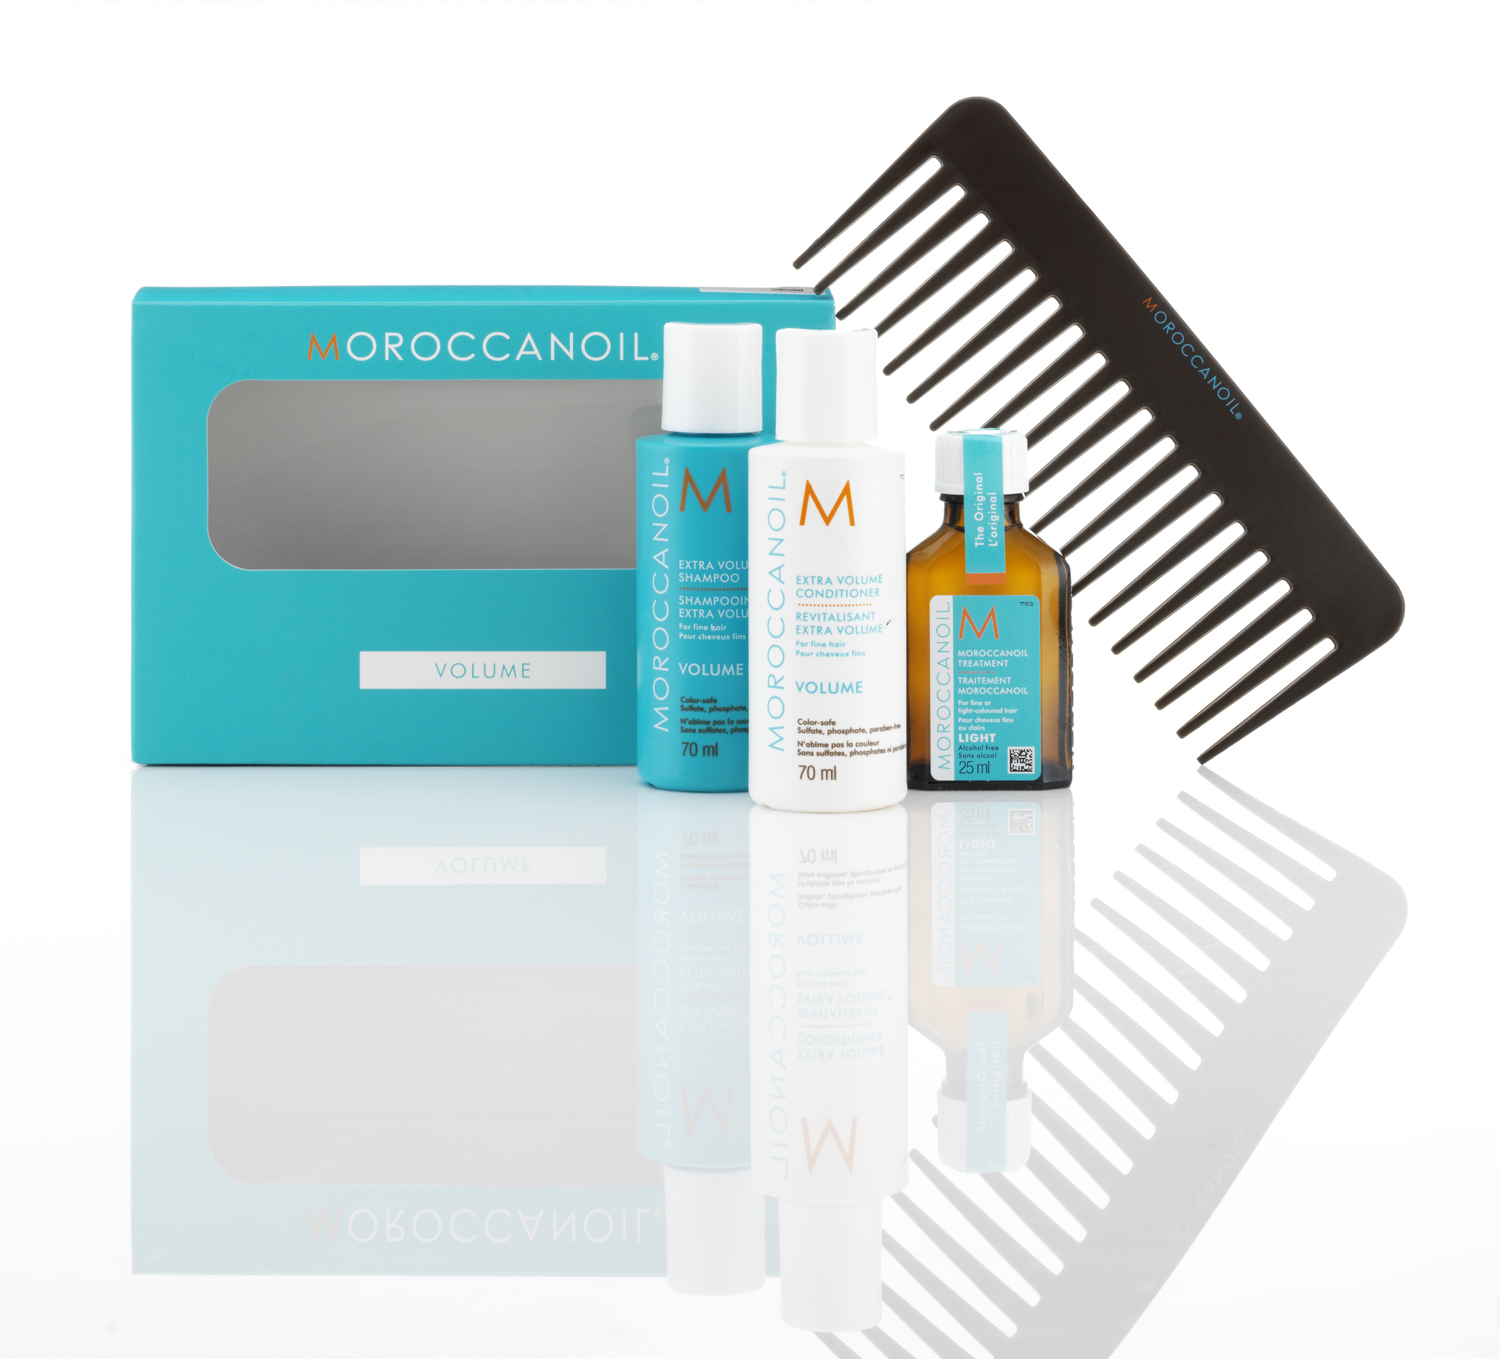 Moroccanoil luxury